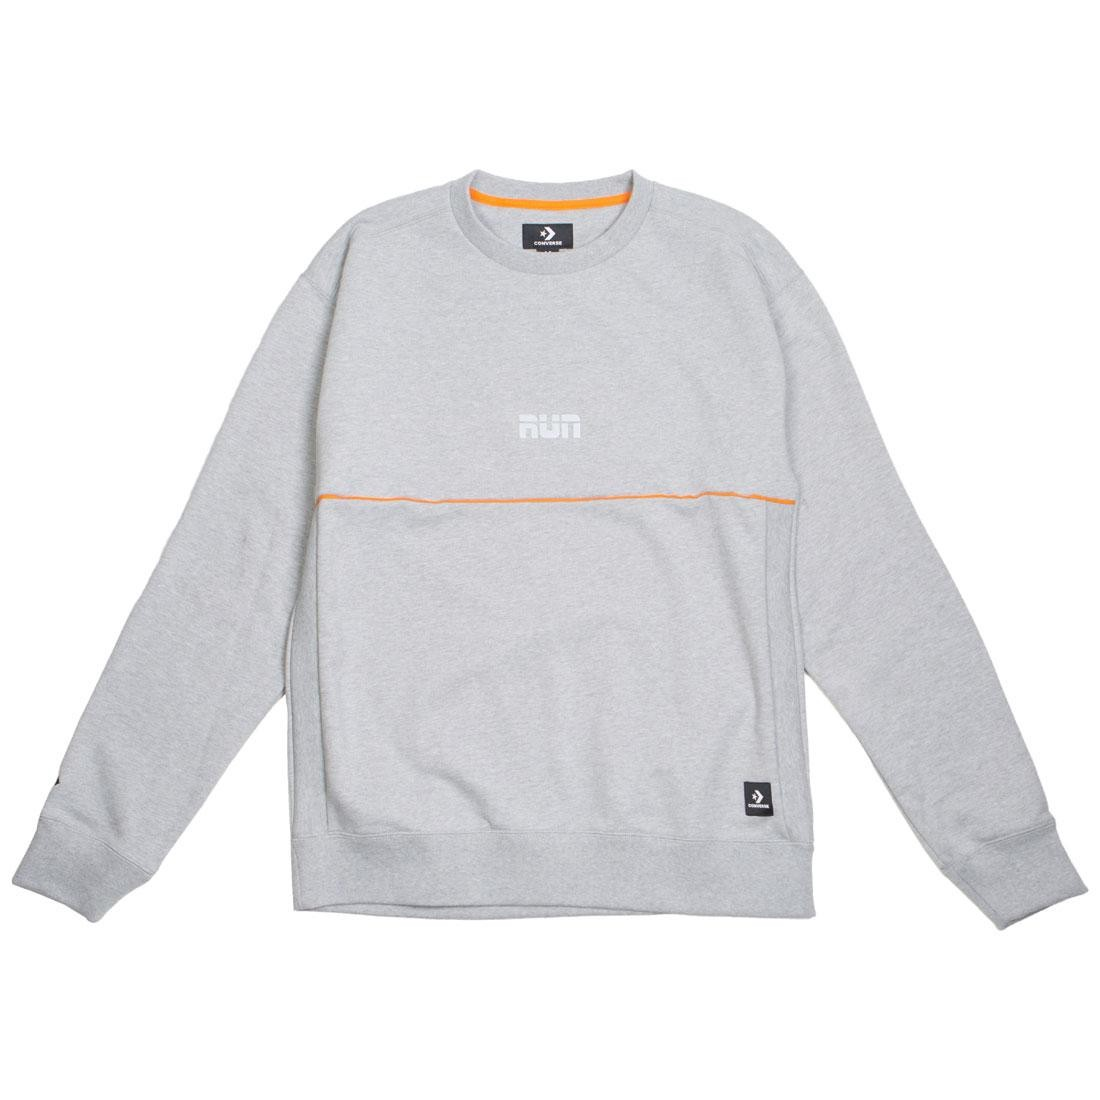 Converse x Vince Staples Men Crew Sweater (gray / heather)